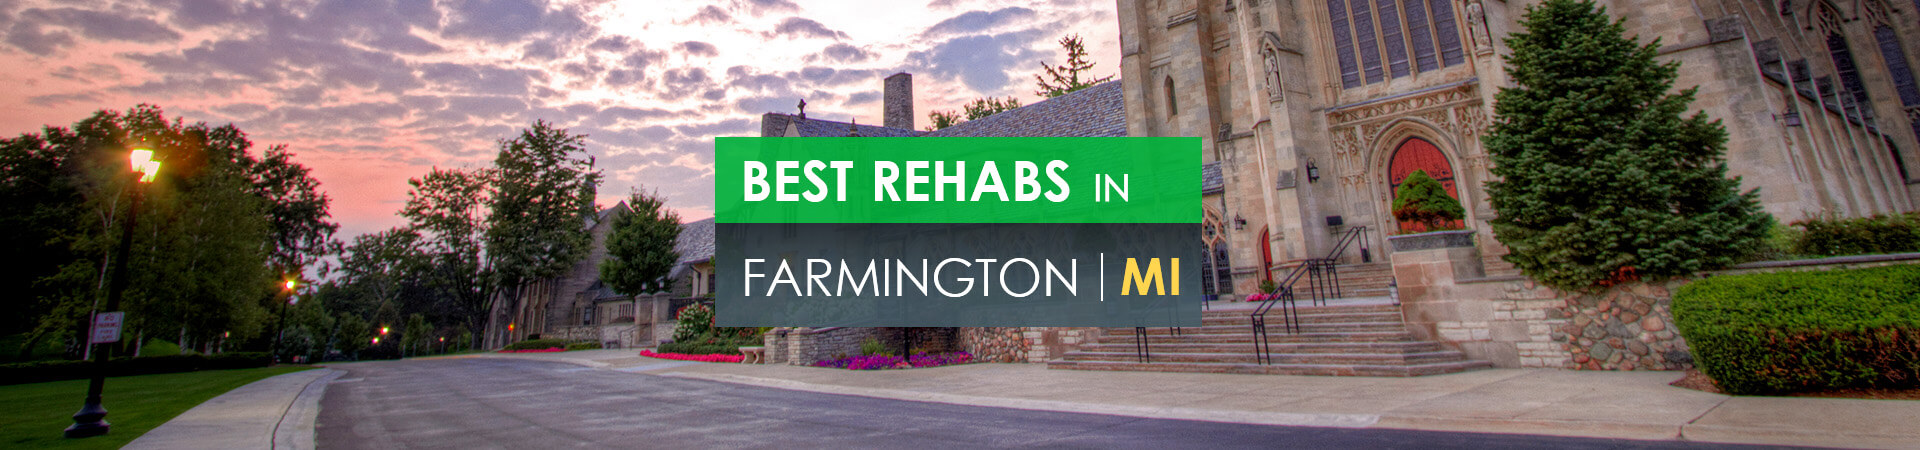 Best rehabs in Farmington, MI